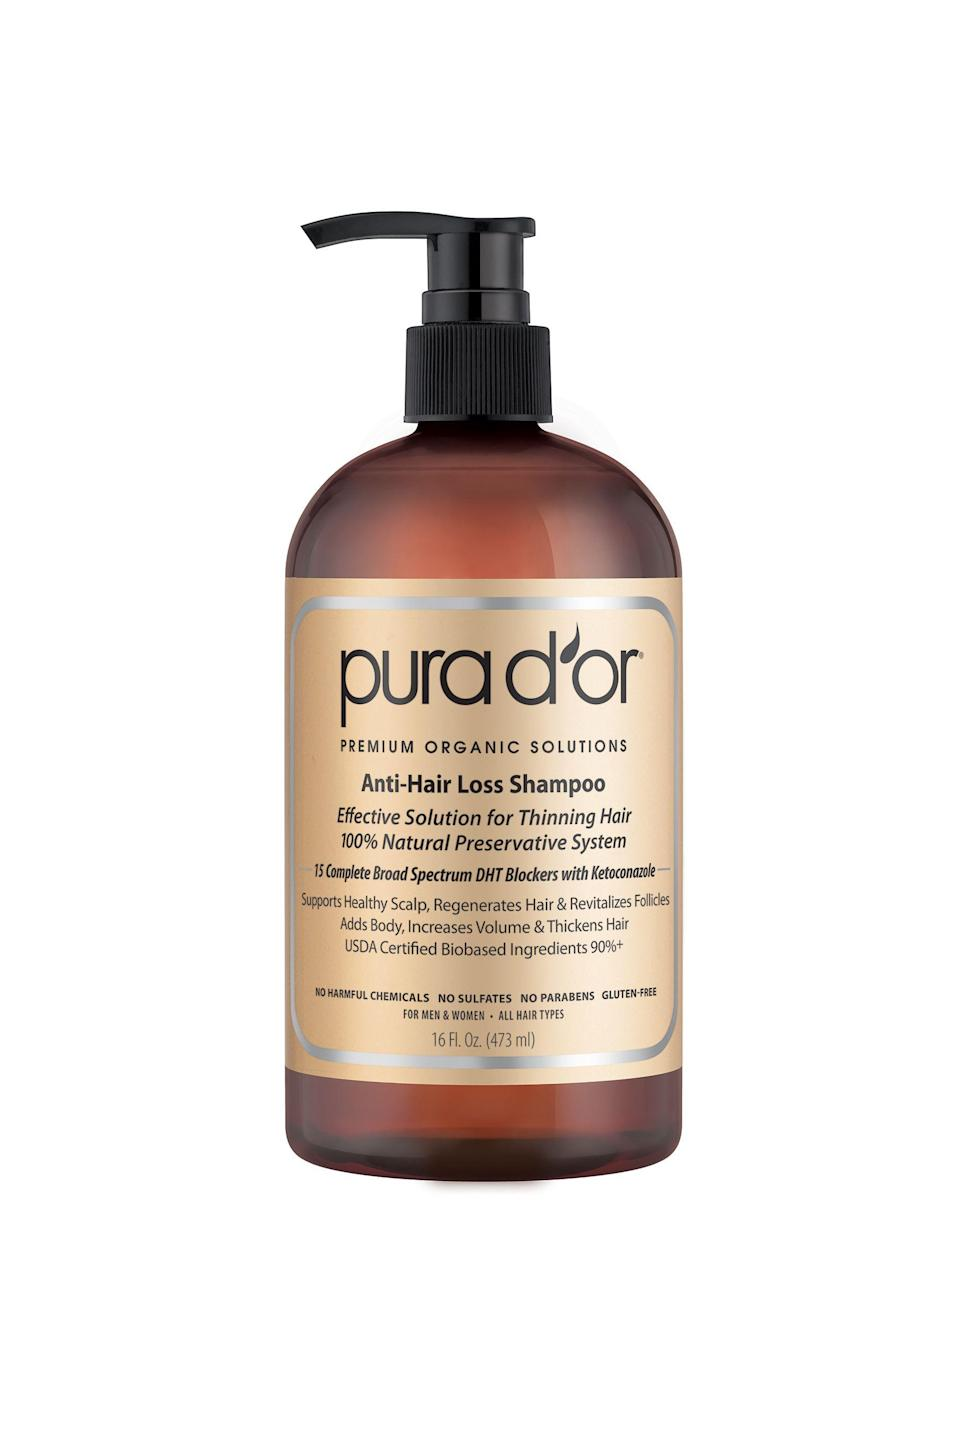 """<p><strong>PURA D'OR</strong></p><p>walmart.com</p><p><strong>$29.99</strong></p><p><a href=""""https://go.redirectingat.com?id=74968X1596630&url=http%3A%2F%2Fwww.walmart.com%2Fip%2F715822762&sref=https%3A%2F%2Fwww.thepioneerwoman.com%2Fbeauty%2Fhair%2Fg32690409%2Fbest-shampoo-for-thinning-hair%2F"""" rel=""""nofollow noopener"""" target=""""_blank"""" data-ylk=""""slk:Shop Now"""" class=""""link rapid-noclick-resp"""">Shop Now</a></p><p>Pura D'or is an organic shampoo (but not too fancy, it's available at Walmart!) made without any harmful chemicals like sulfates and parabens. It's designed to both suppress the DHT hormone to fight hair loss and actively thicken and volumize existing locks. </p>"""